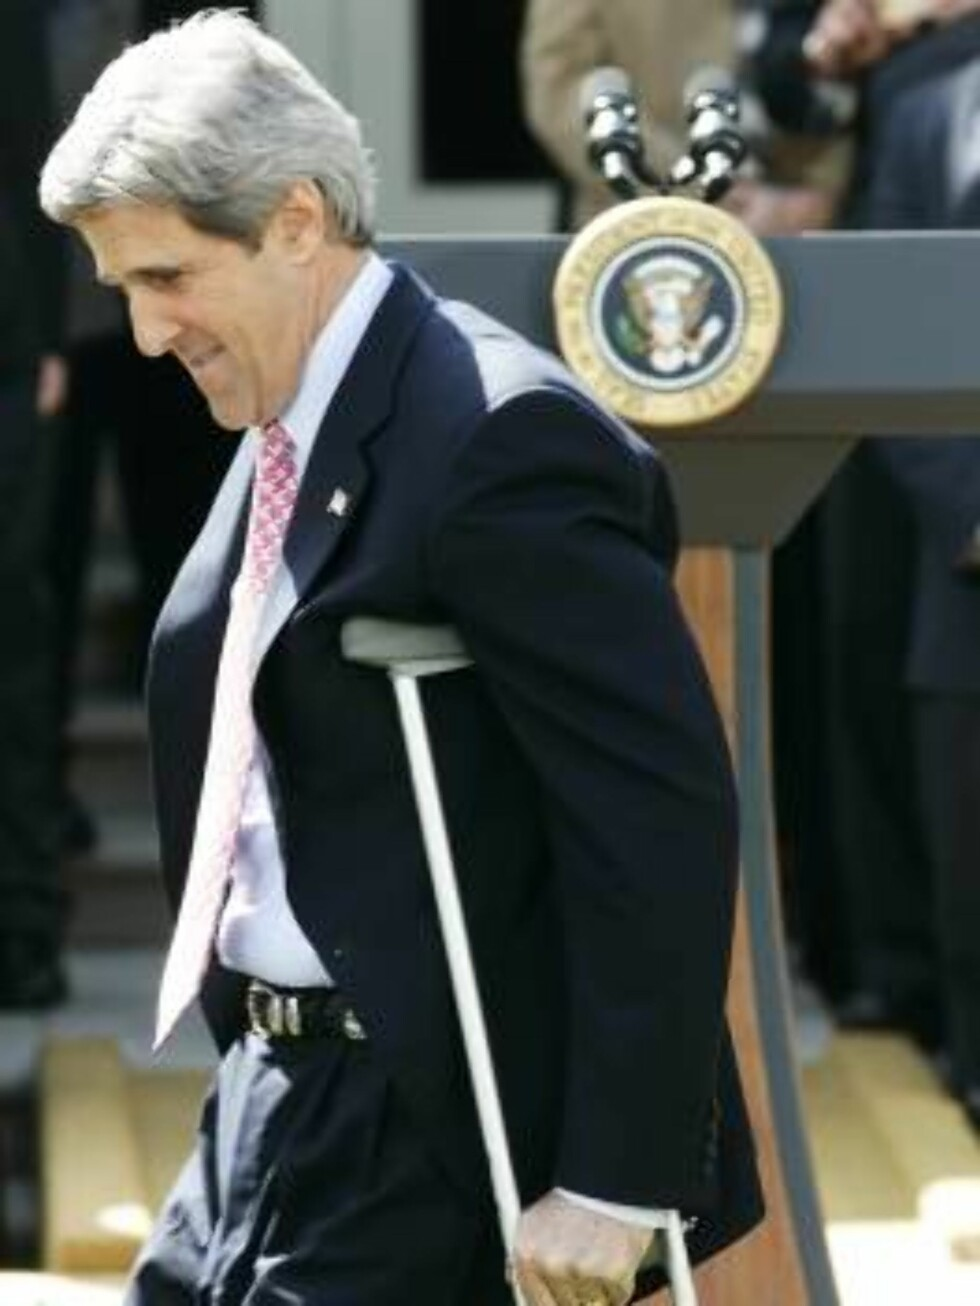 WASHINGTON - APRIL 13:  U.S. Senator John Kerry (D-MA) walks with crutches as he arrives for a Rose Garden event to honor the Super Bowl Champion New England Patriots April 13, 2005 at the White House in Washington, DC. Senator Kerry had knee surgery rece Foto: All Over Press